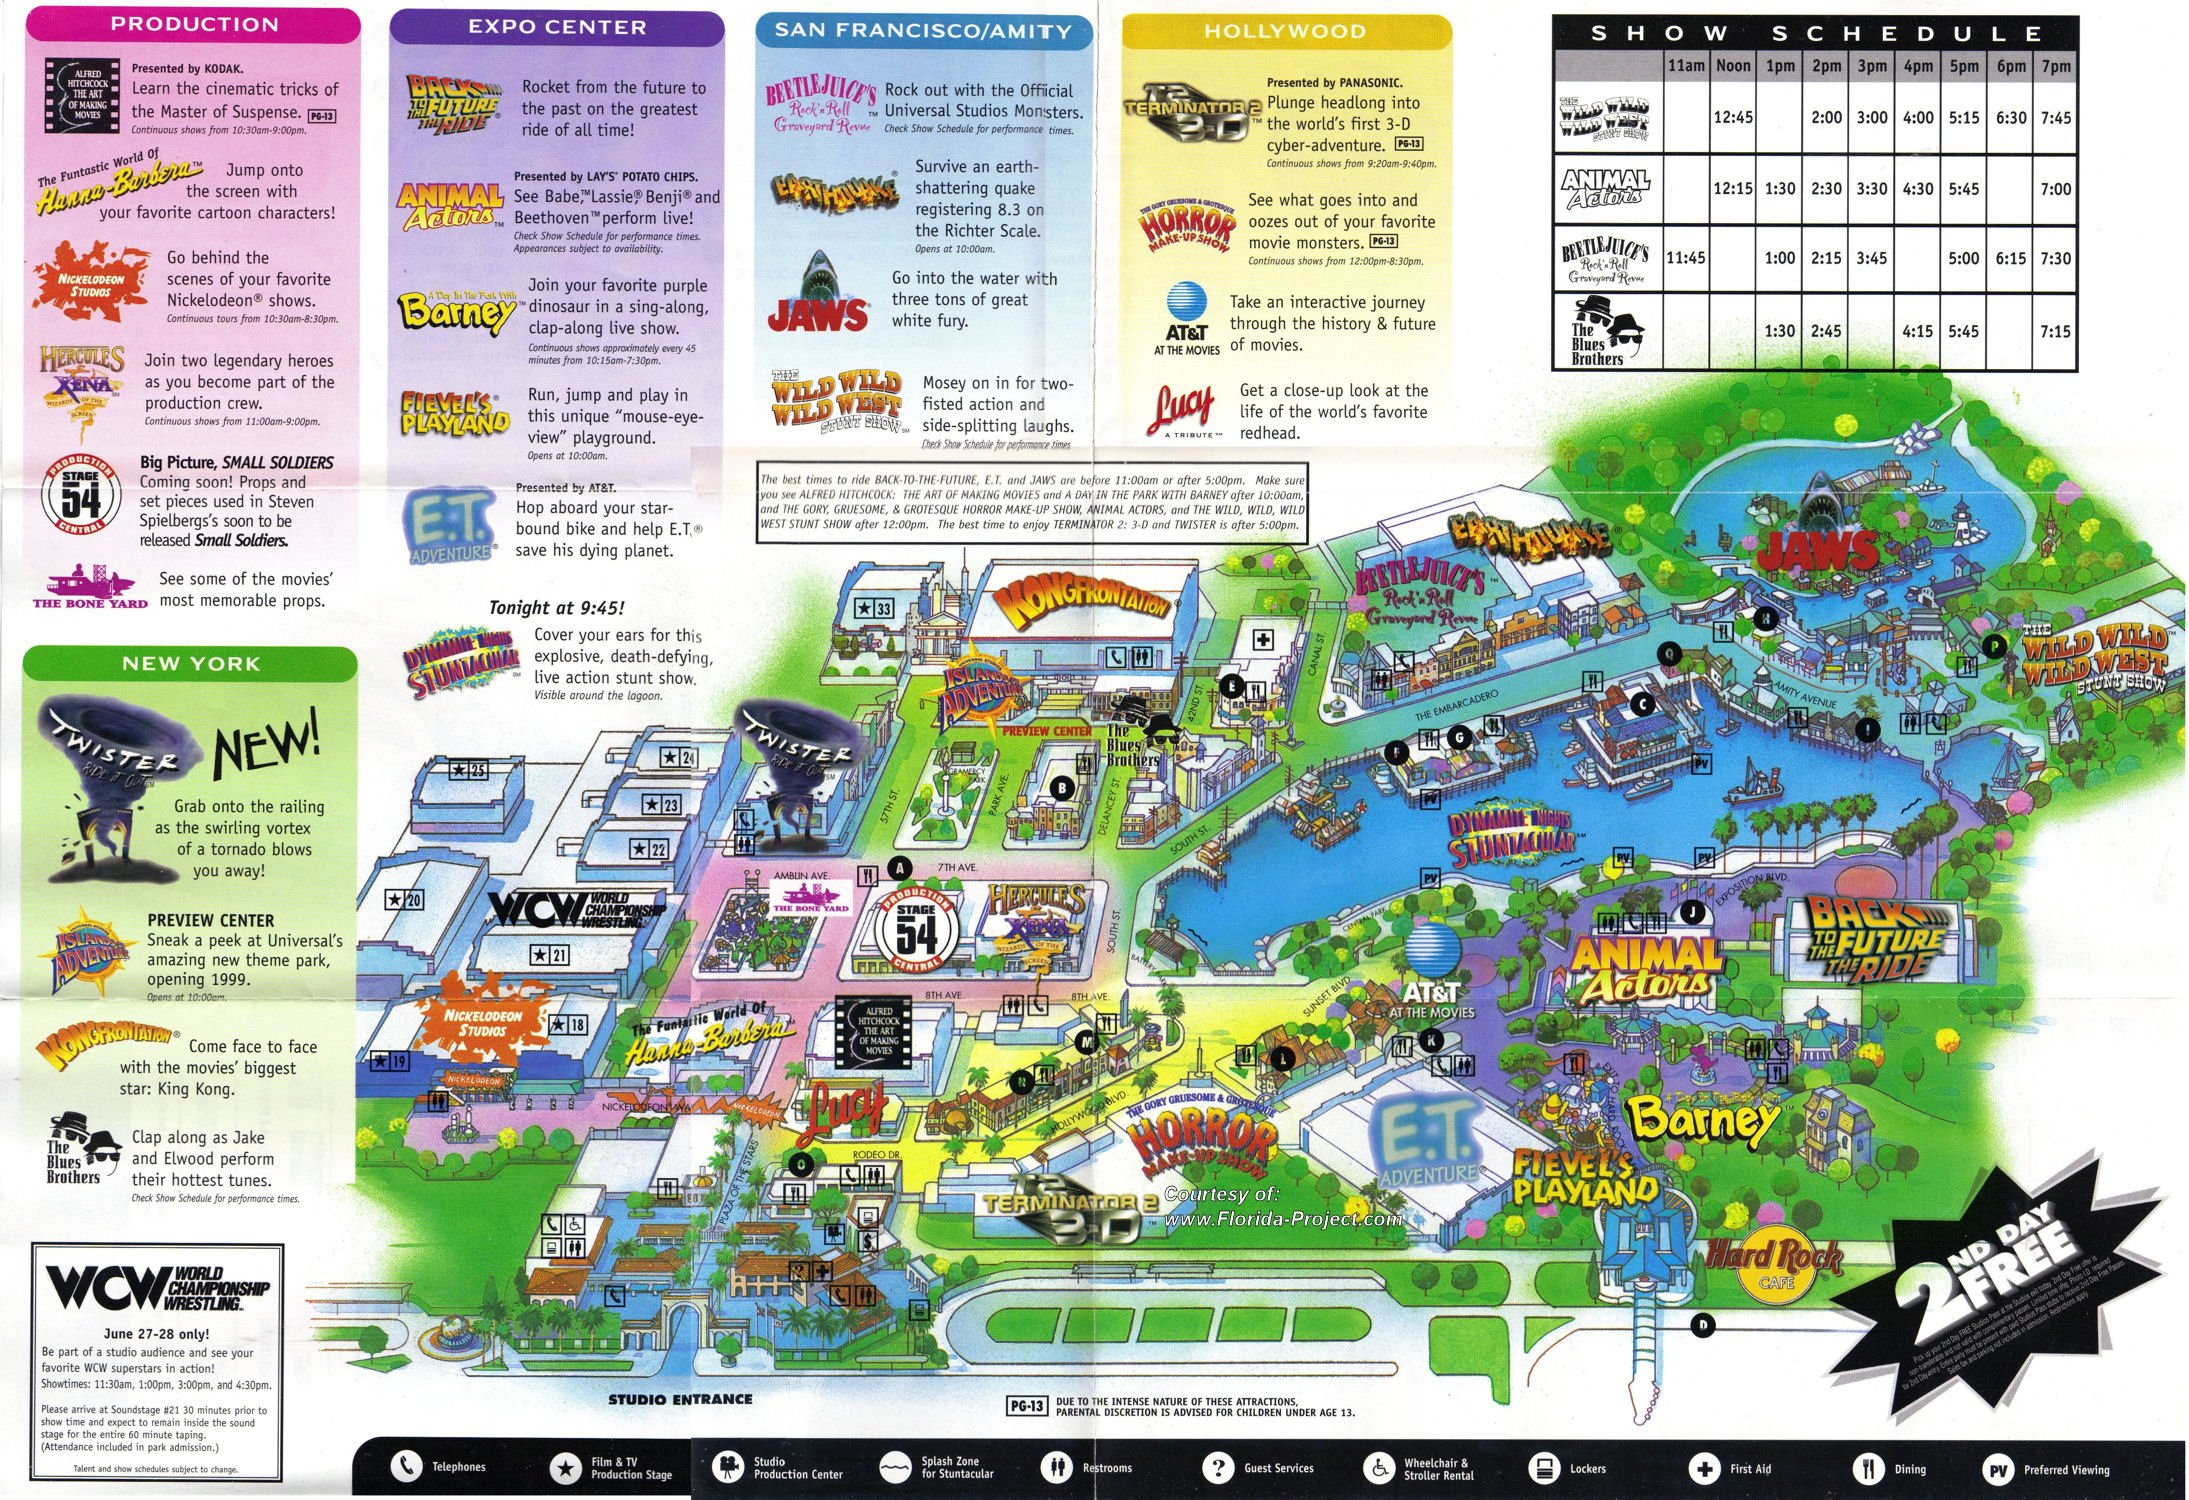 Universal Studios Florida Map From Ambergontrail 9 - Ameliabd - Universal Studios Florida Map